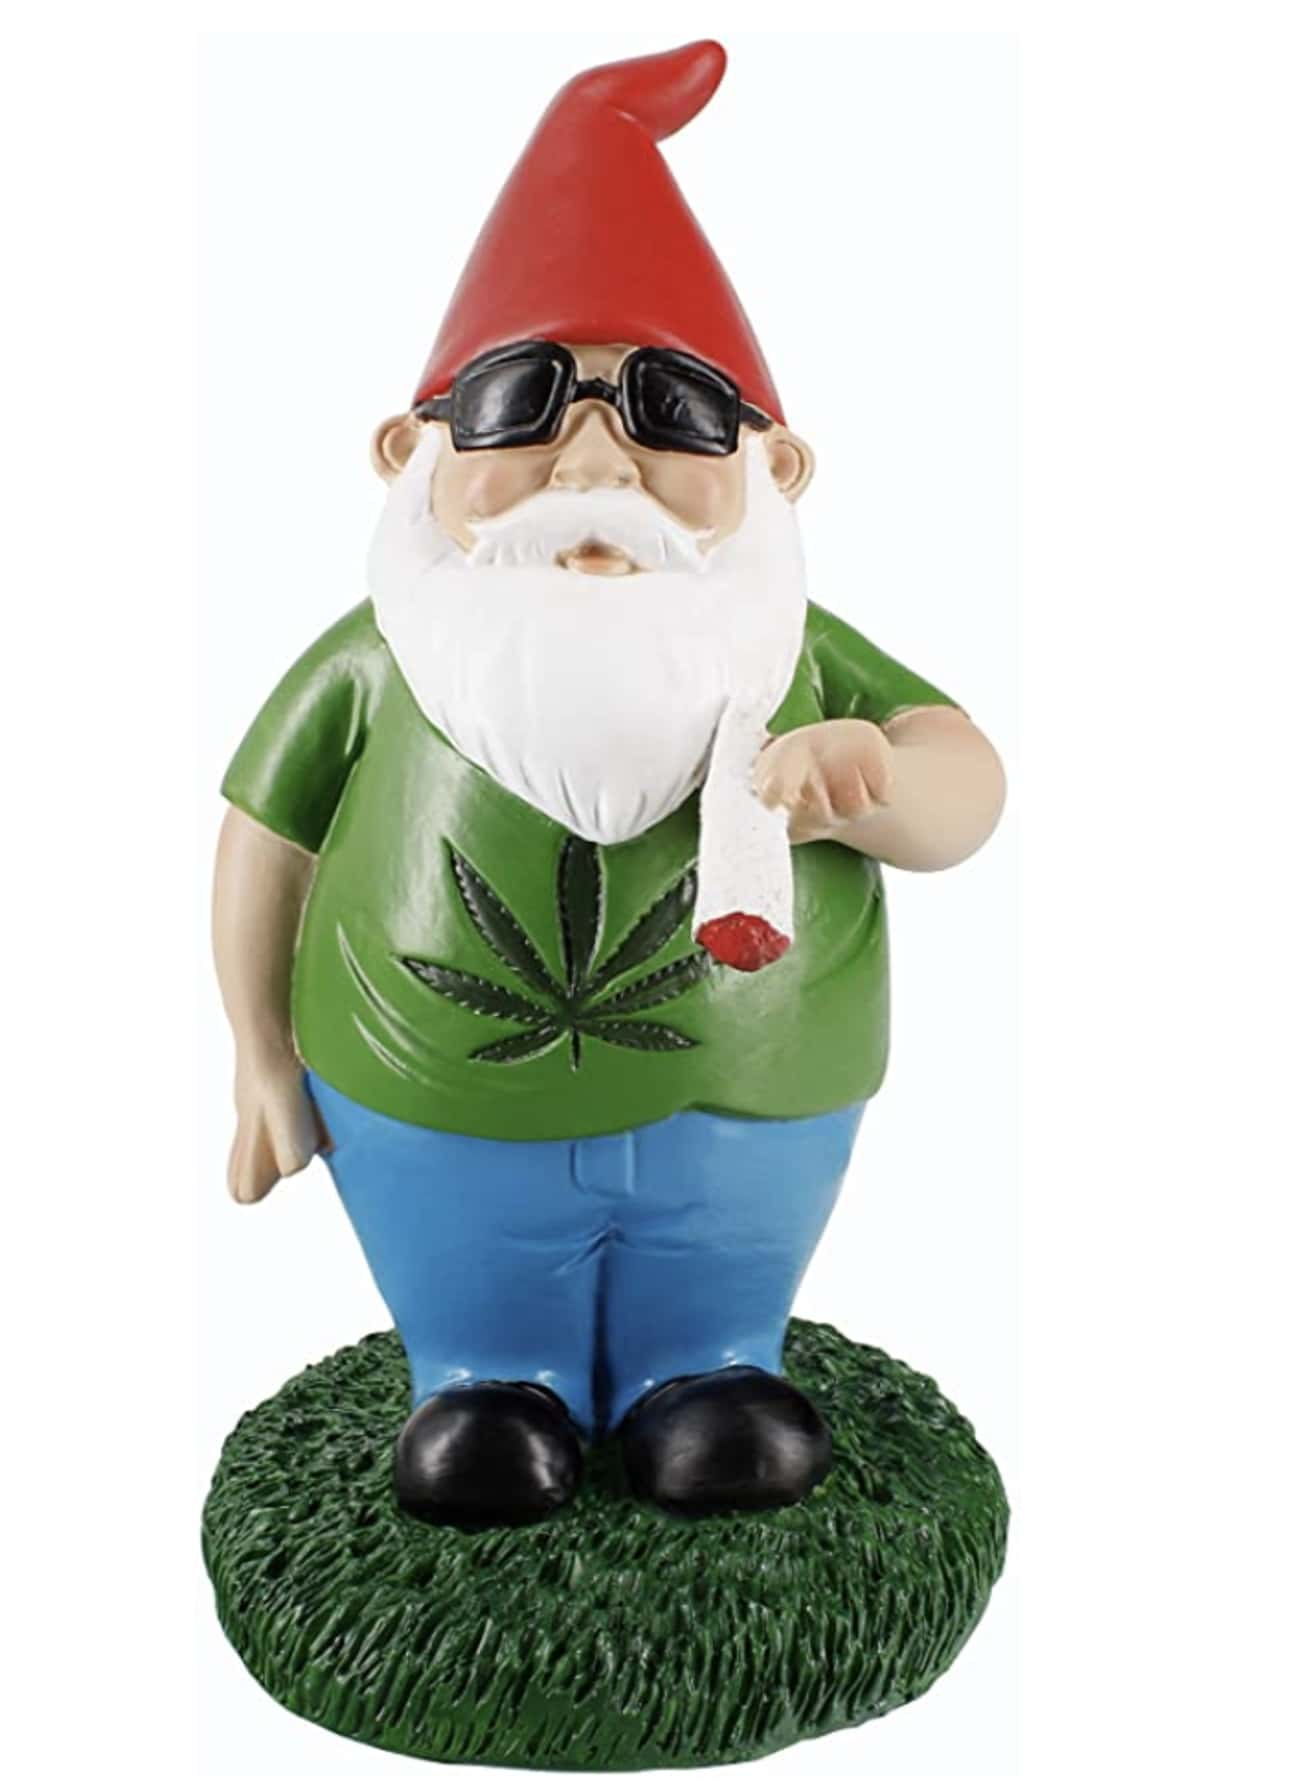 High Gnome is listed (or ranked) 4 on the list 20 Cool Garden Gnomes To Spice Up Your Yard